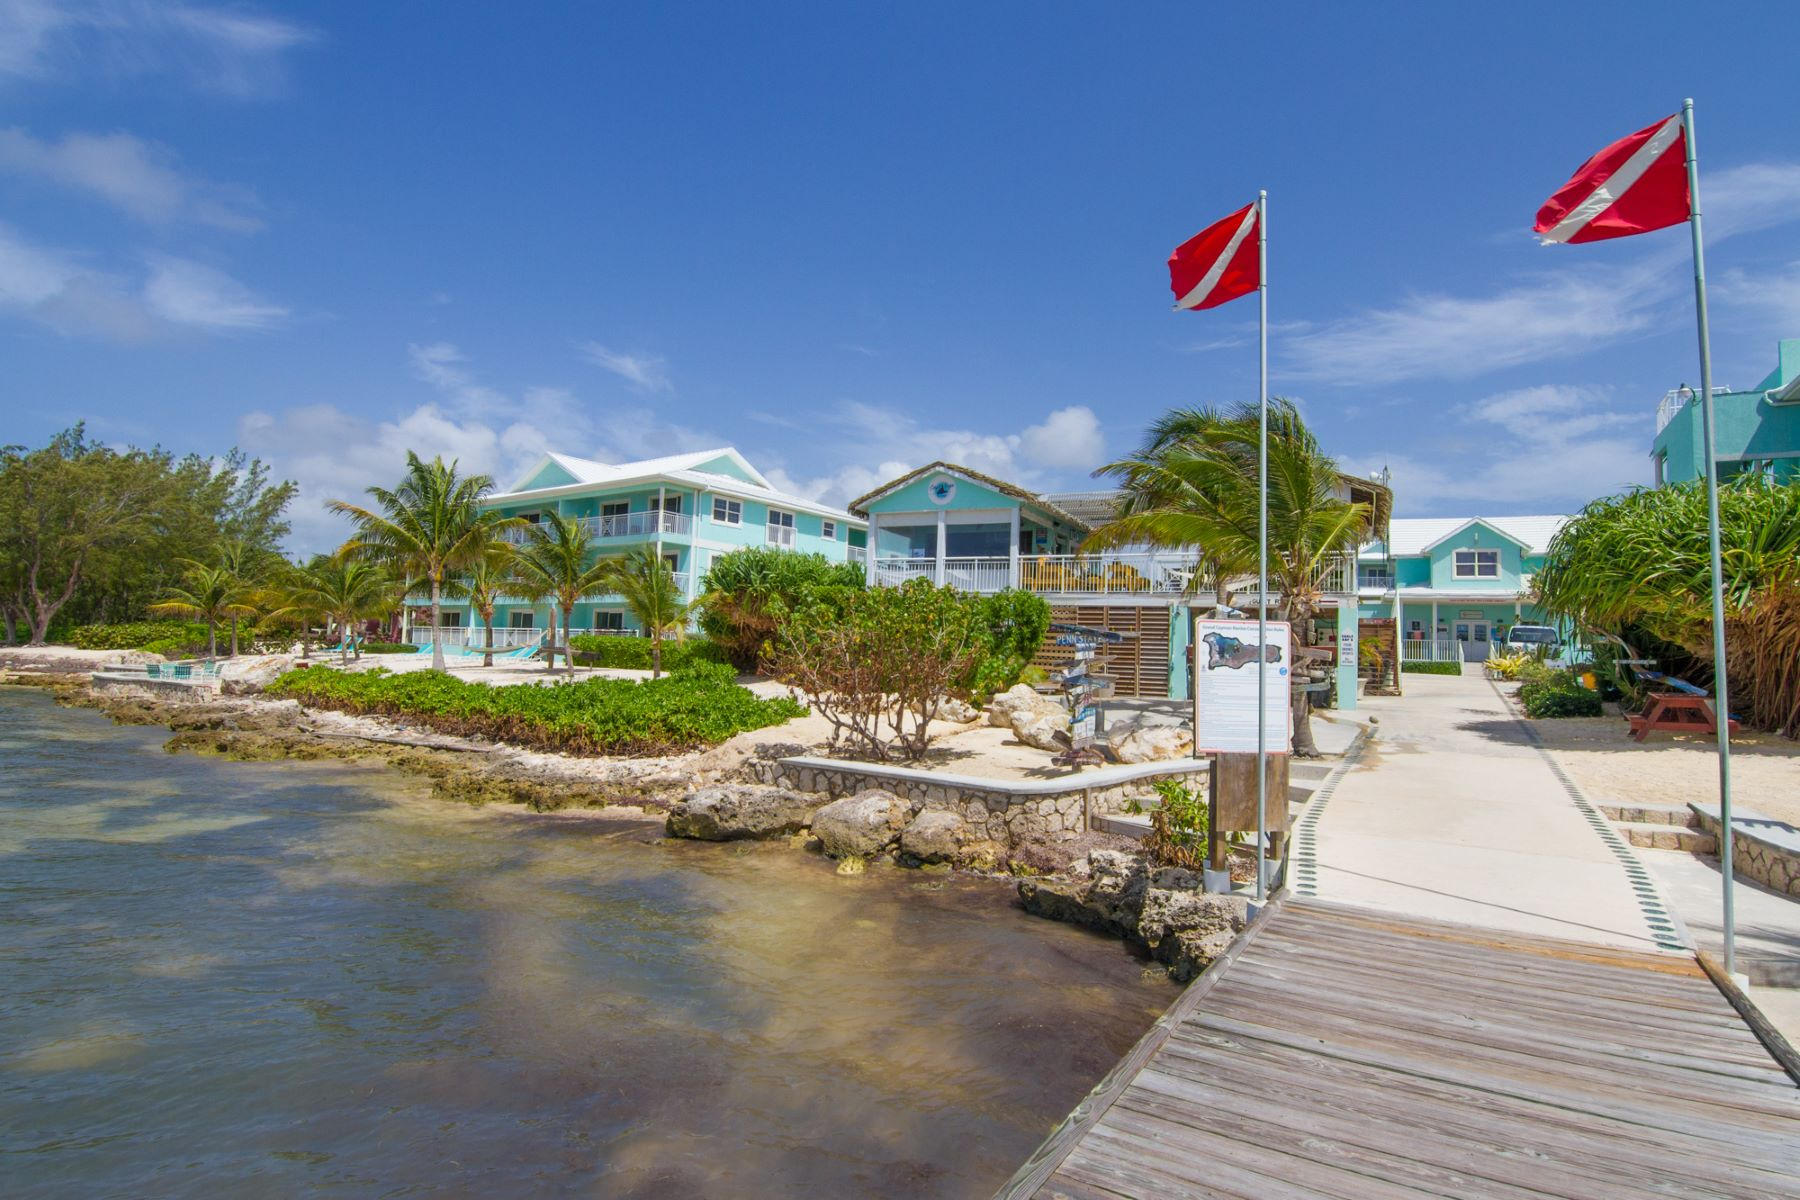 Condominium for Sale at Compass Point Oceanfront #214 East End, Cayman Islands